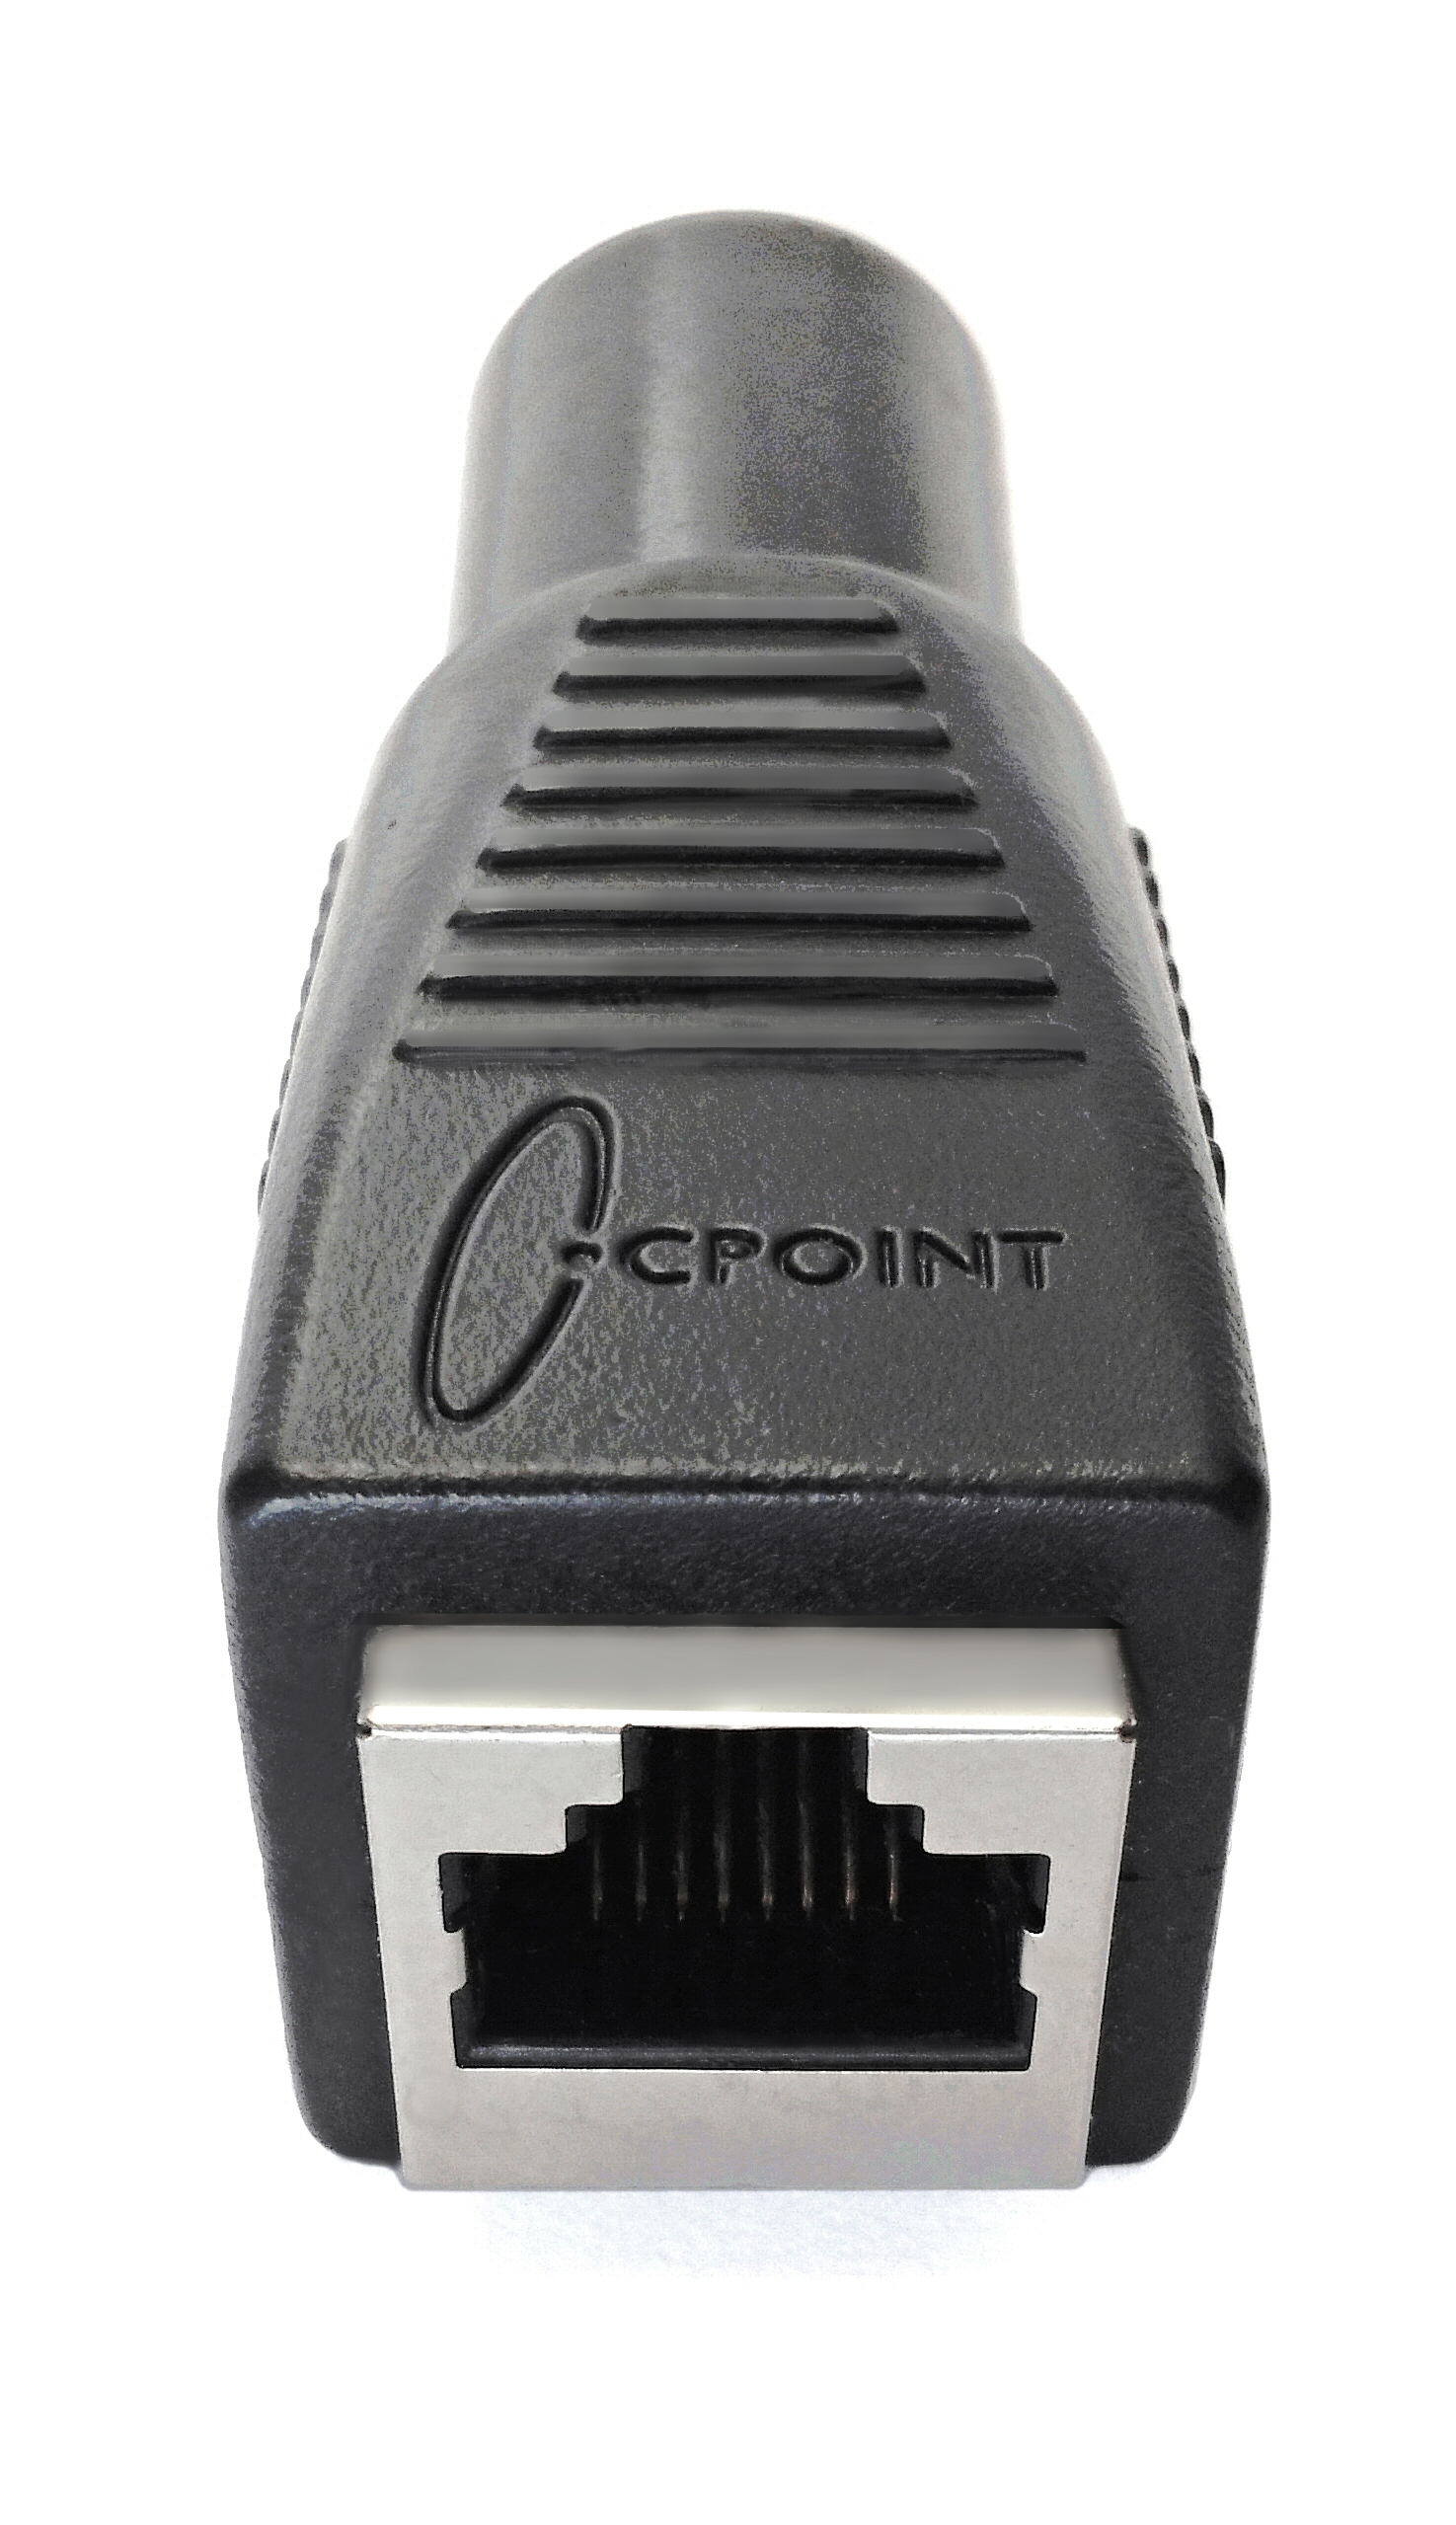 Cpoint Xlrj45 Adapter Xlr To Rj45 Wiring Diagram High Resolution File